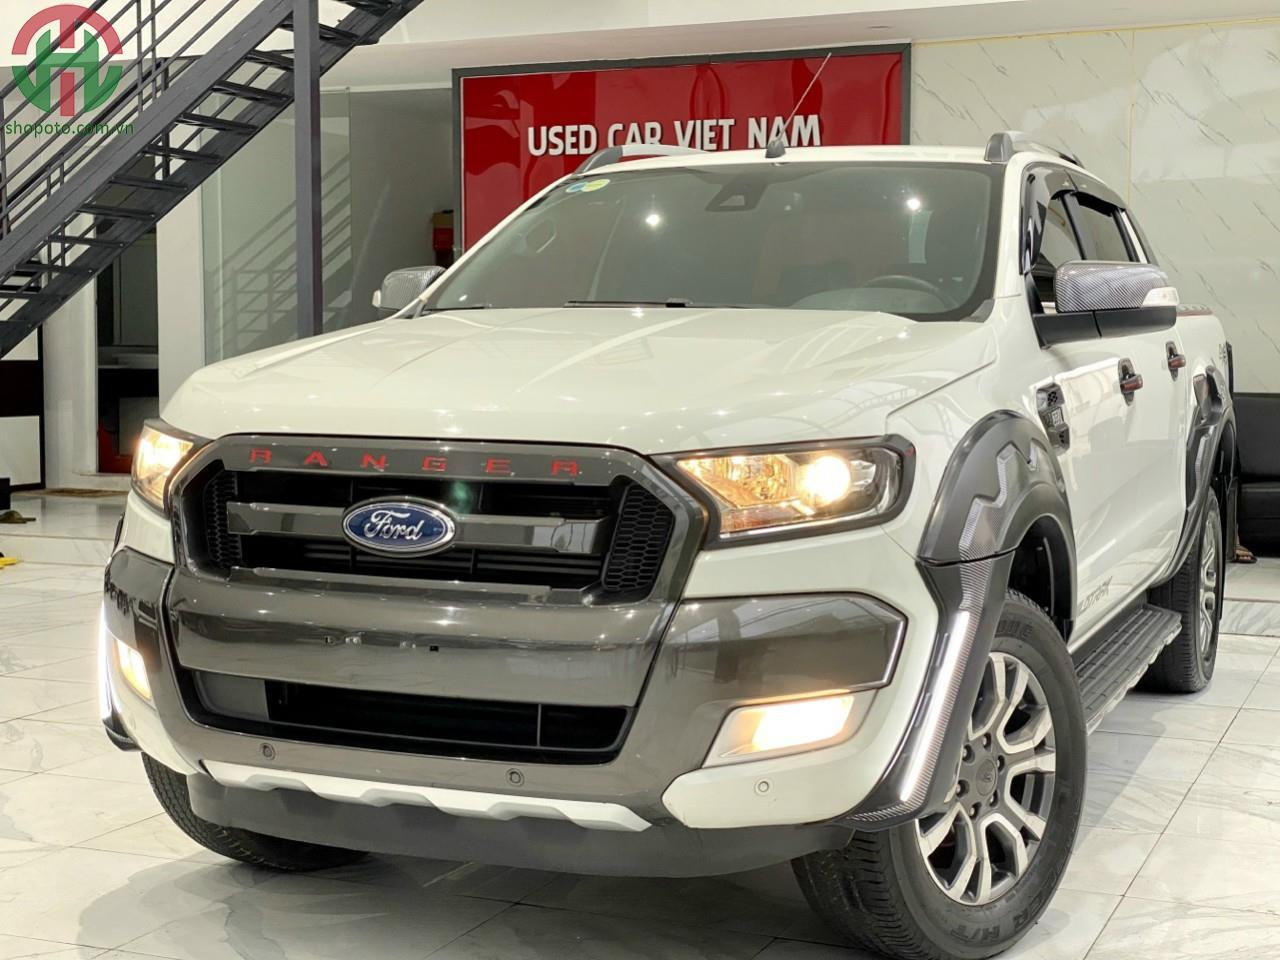 Ford Ranger Wildtrack 3.2 AT 4X4 2 Cầu 2017